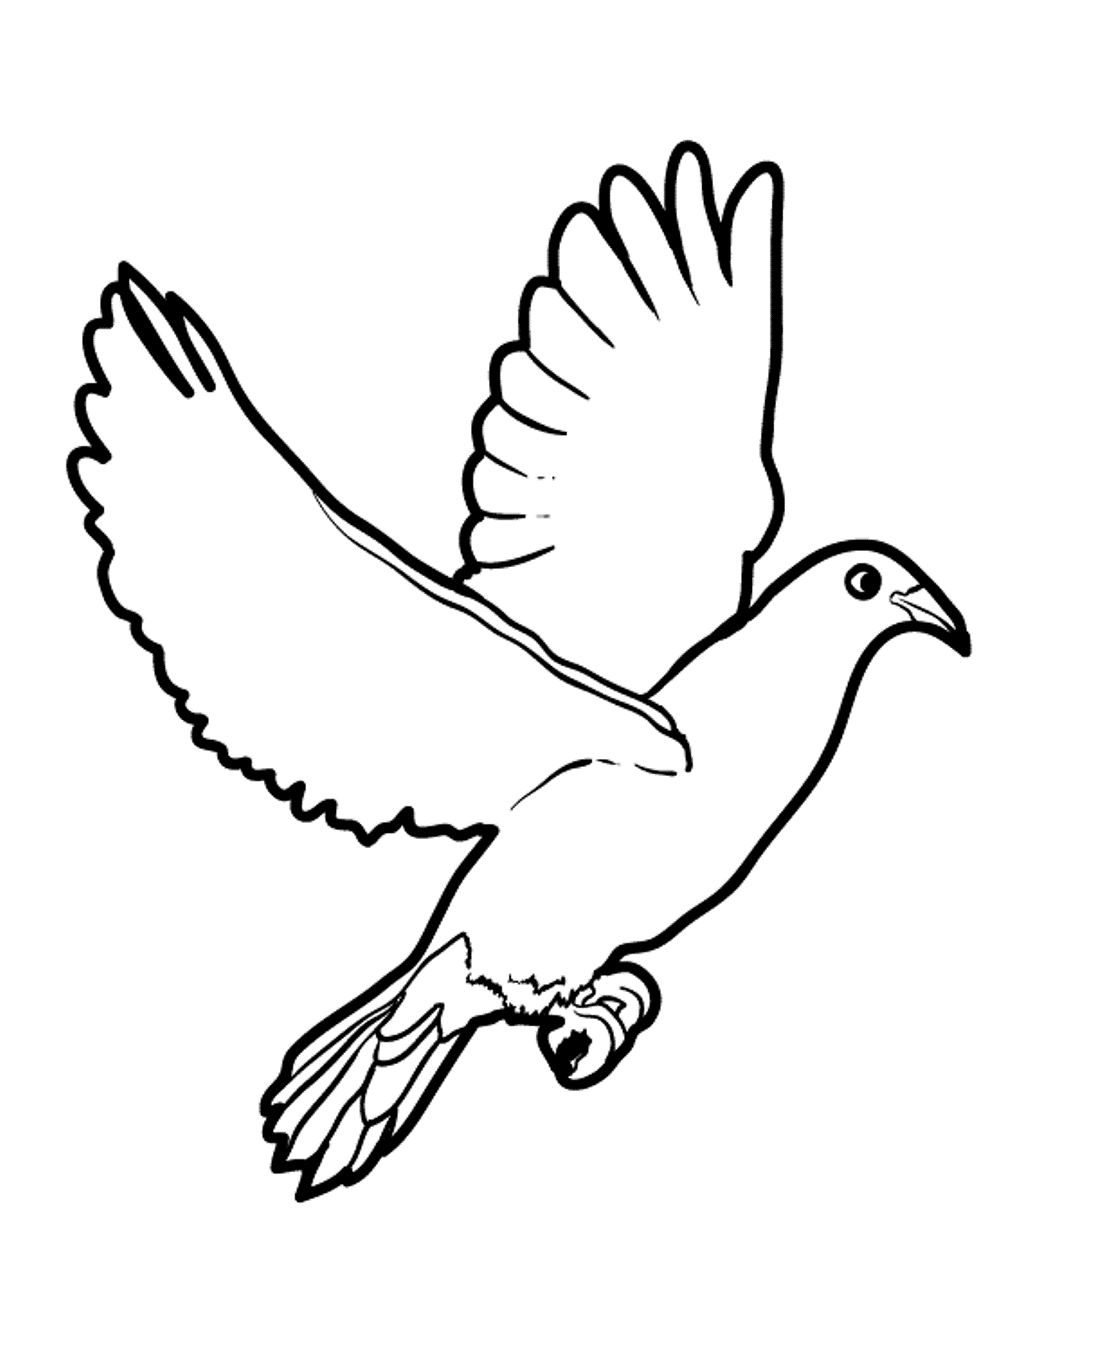 coloring birds for kids kids page birds coloring pages printable birds coloring coloring kids for birds